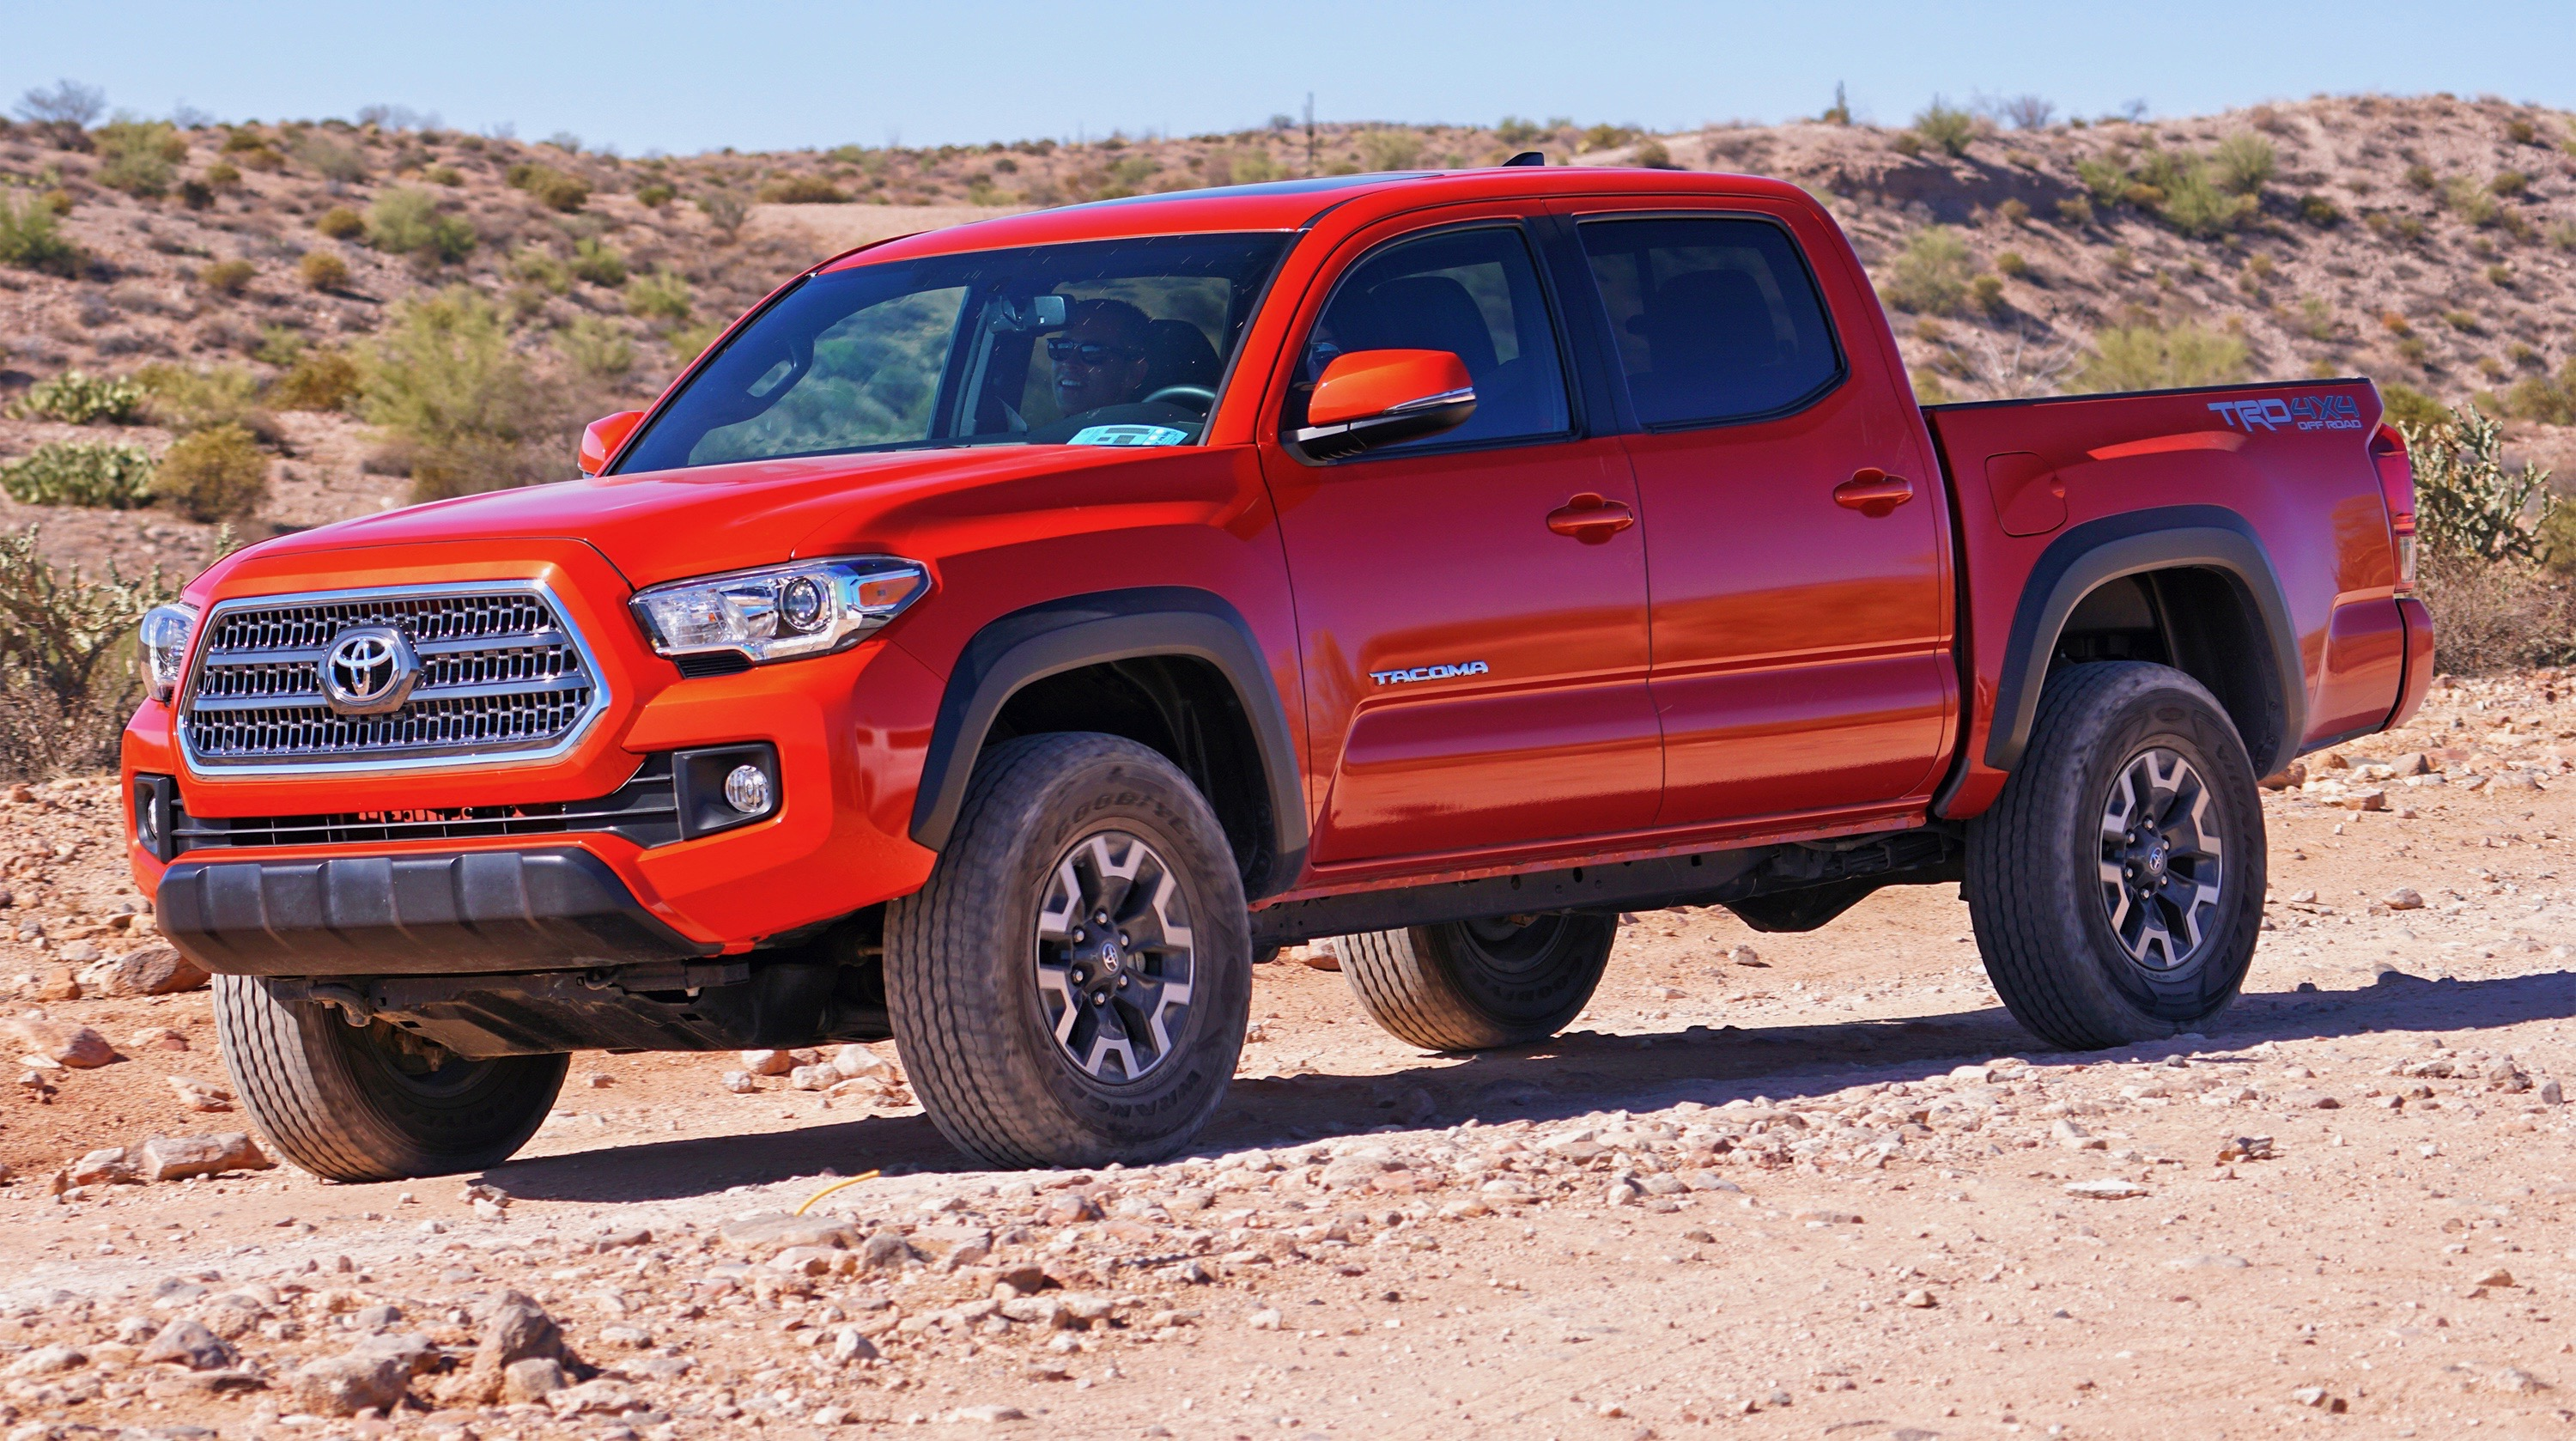 2016 Tacoma with TRD Off-Road package during recent media event in Phoenix | Mark Elias Media Services photo